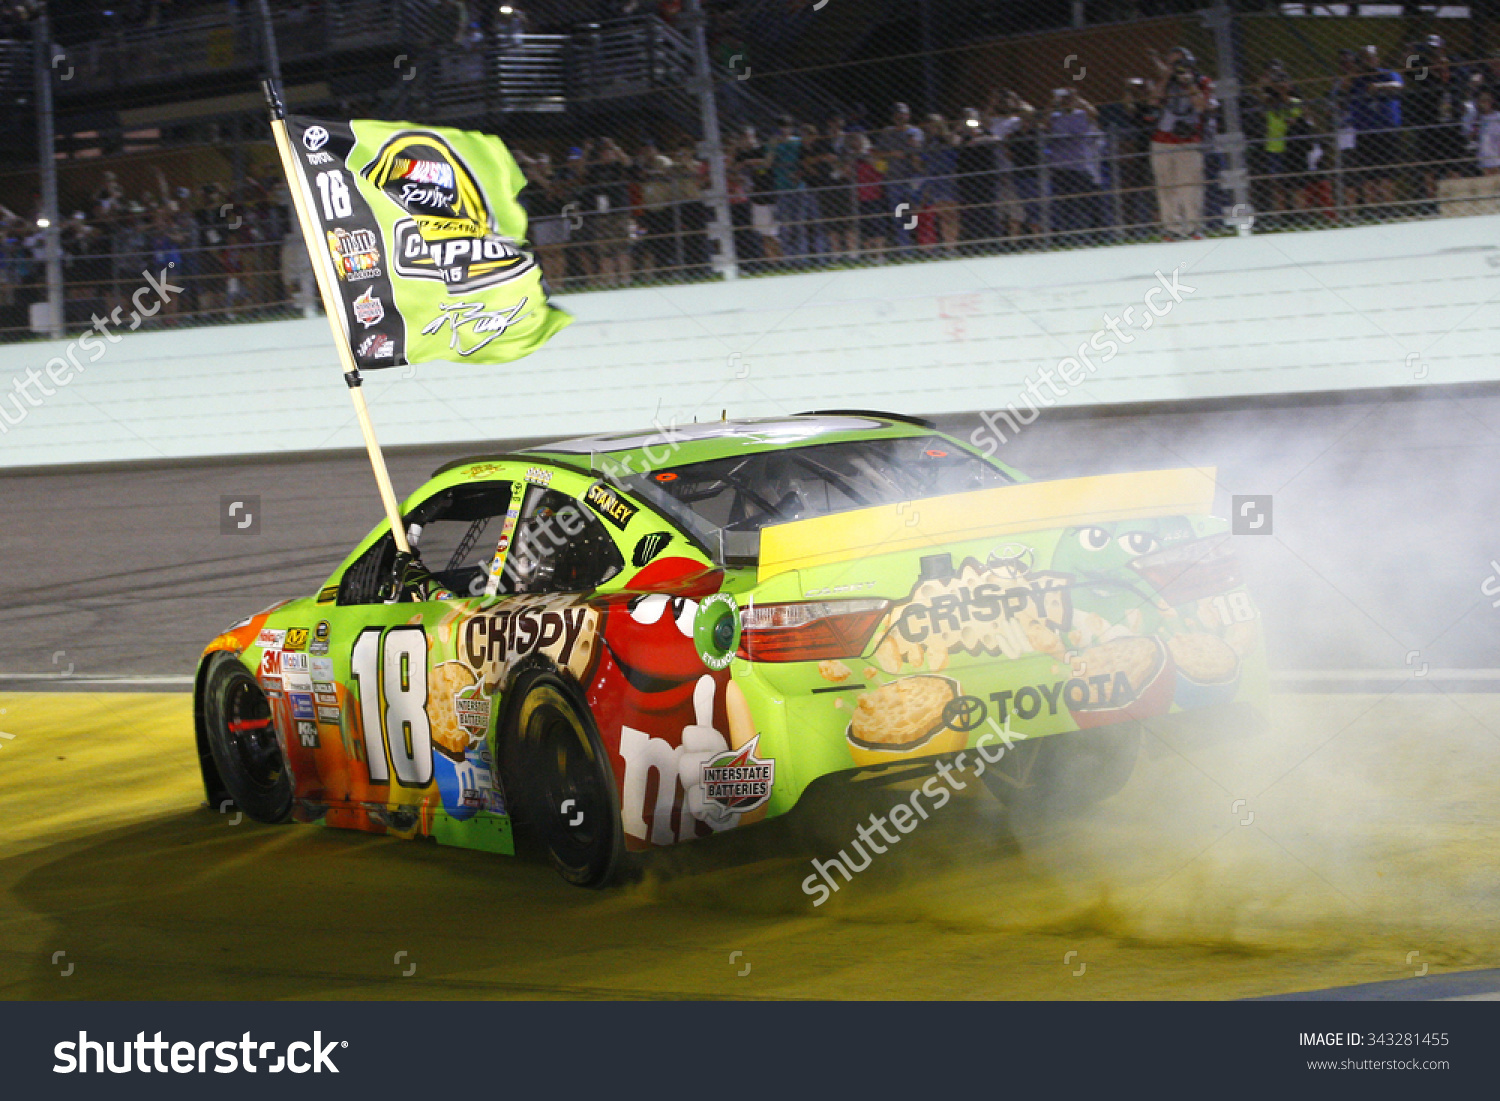 Kyle busch clipart banner freeuse Homestead, Fl - Nov 23, 2015: Kyle Busch (18) Wins The 2015 Nascar ... banner freeuse